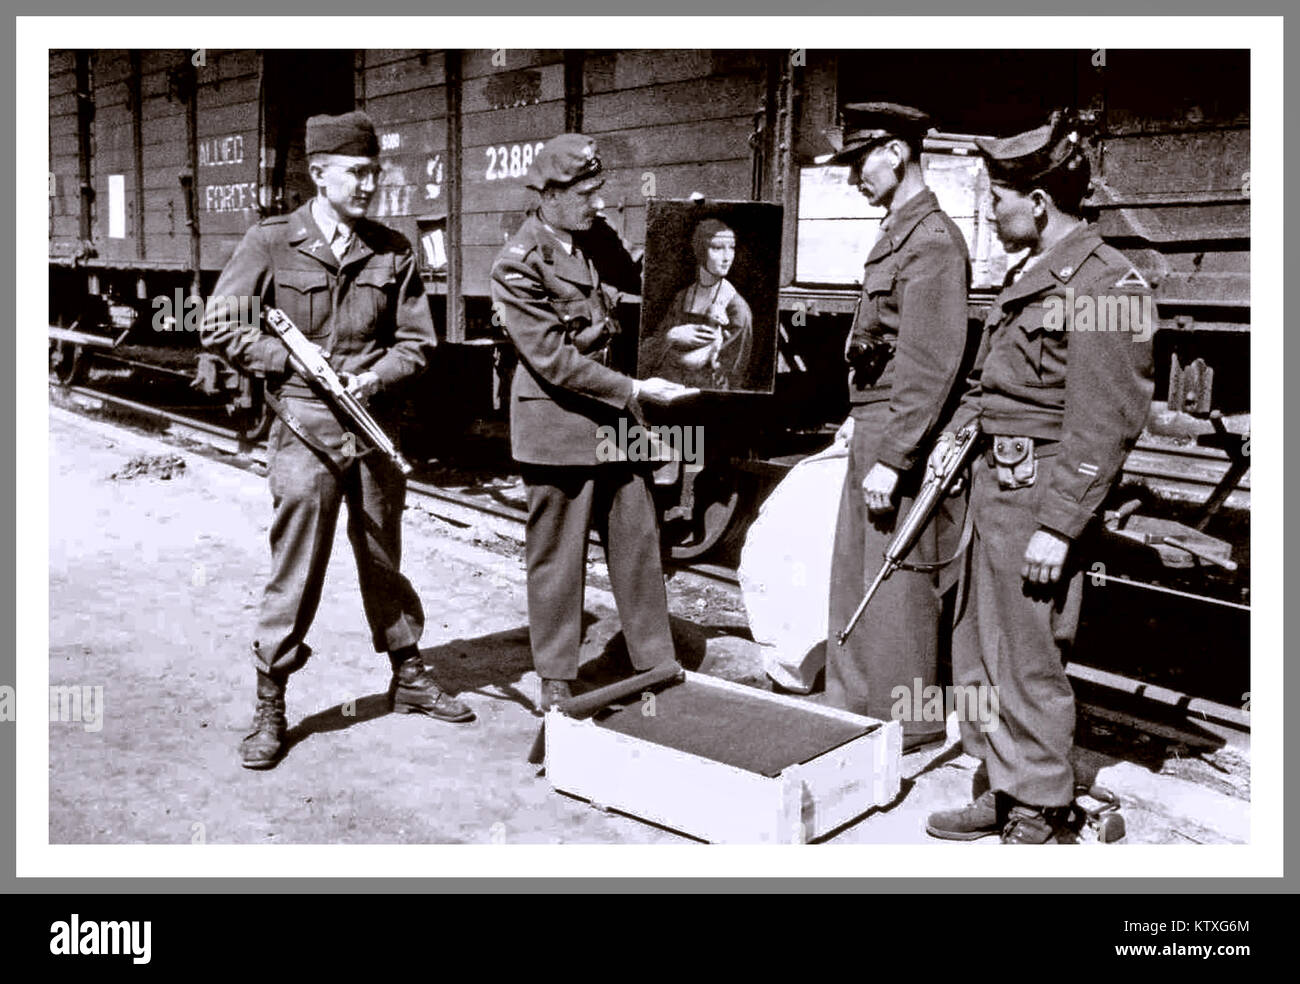 LEONARDO DA VINCI  'Lady with an Ermine' Nazi Loot.  Art historian Karol Estreicher, American MFAA officer Lt. Frank Stock Photo